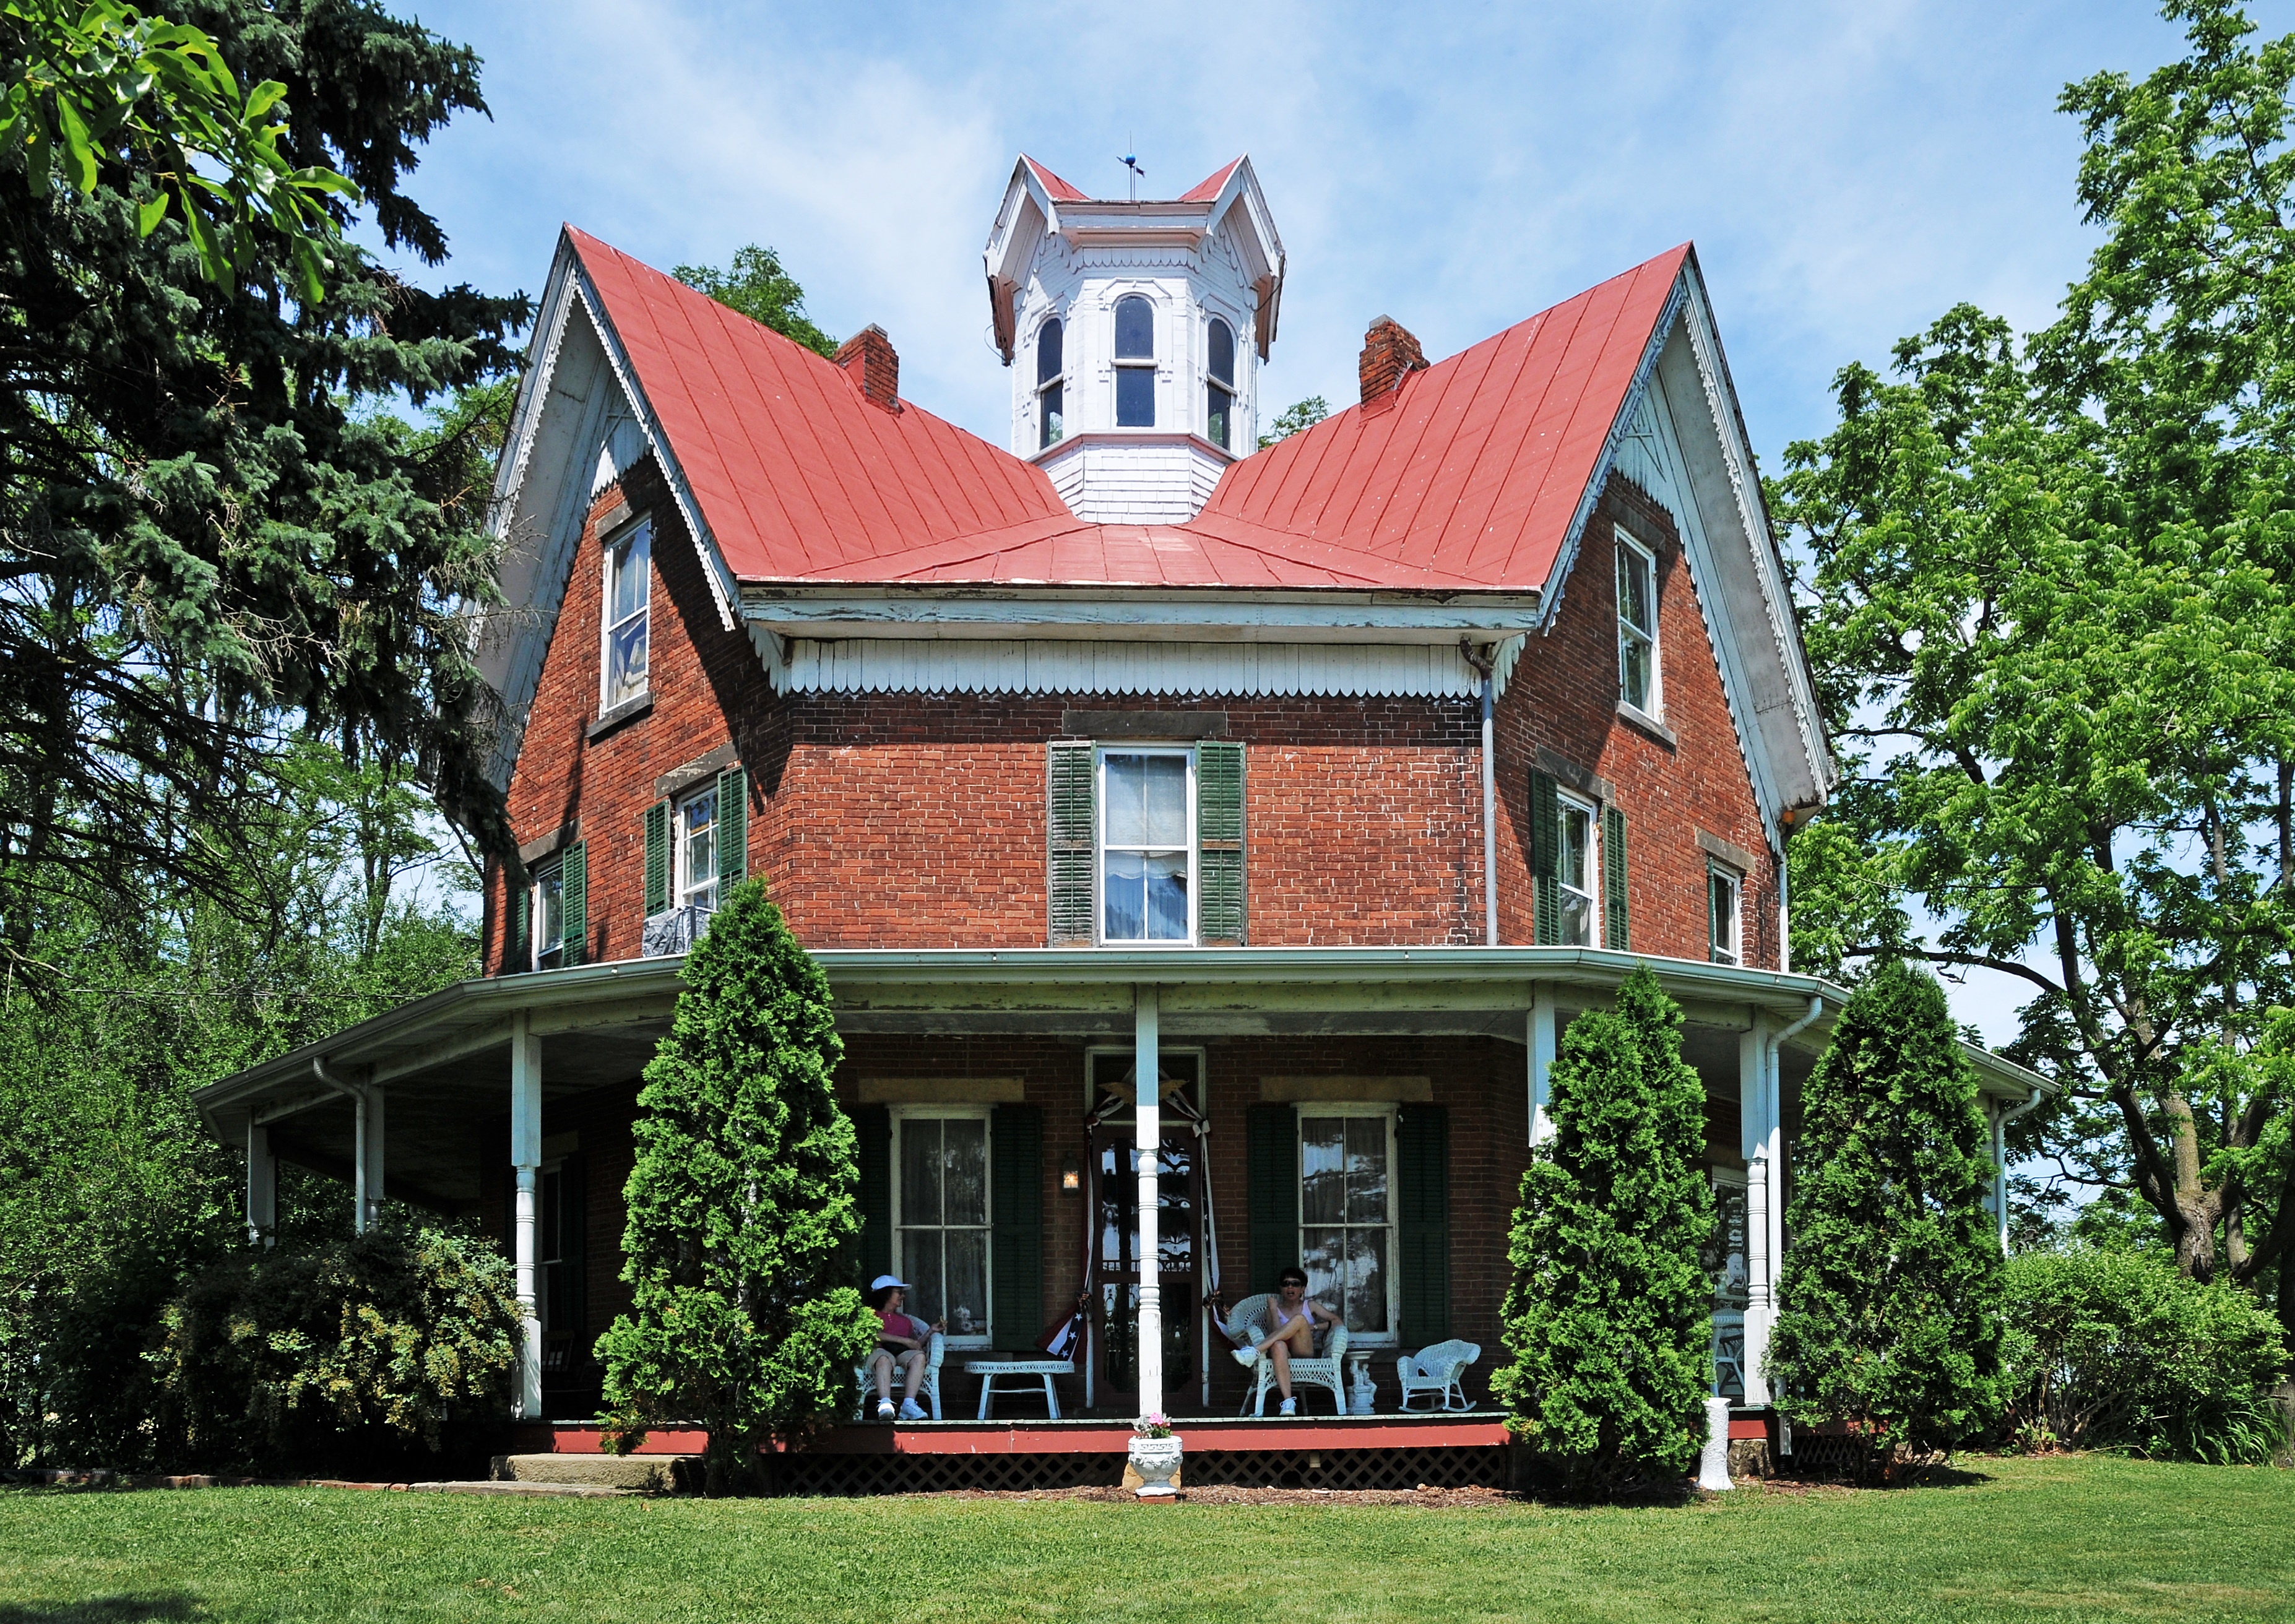 Filethe Octagon House  Jpg Wikimedia Commons